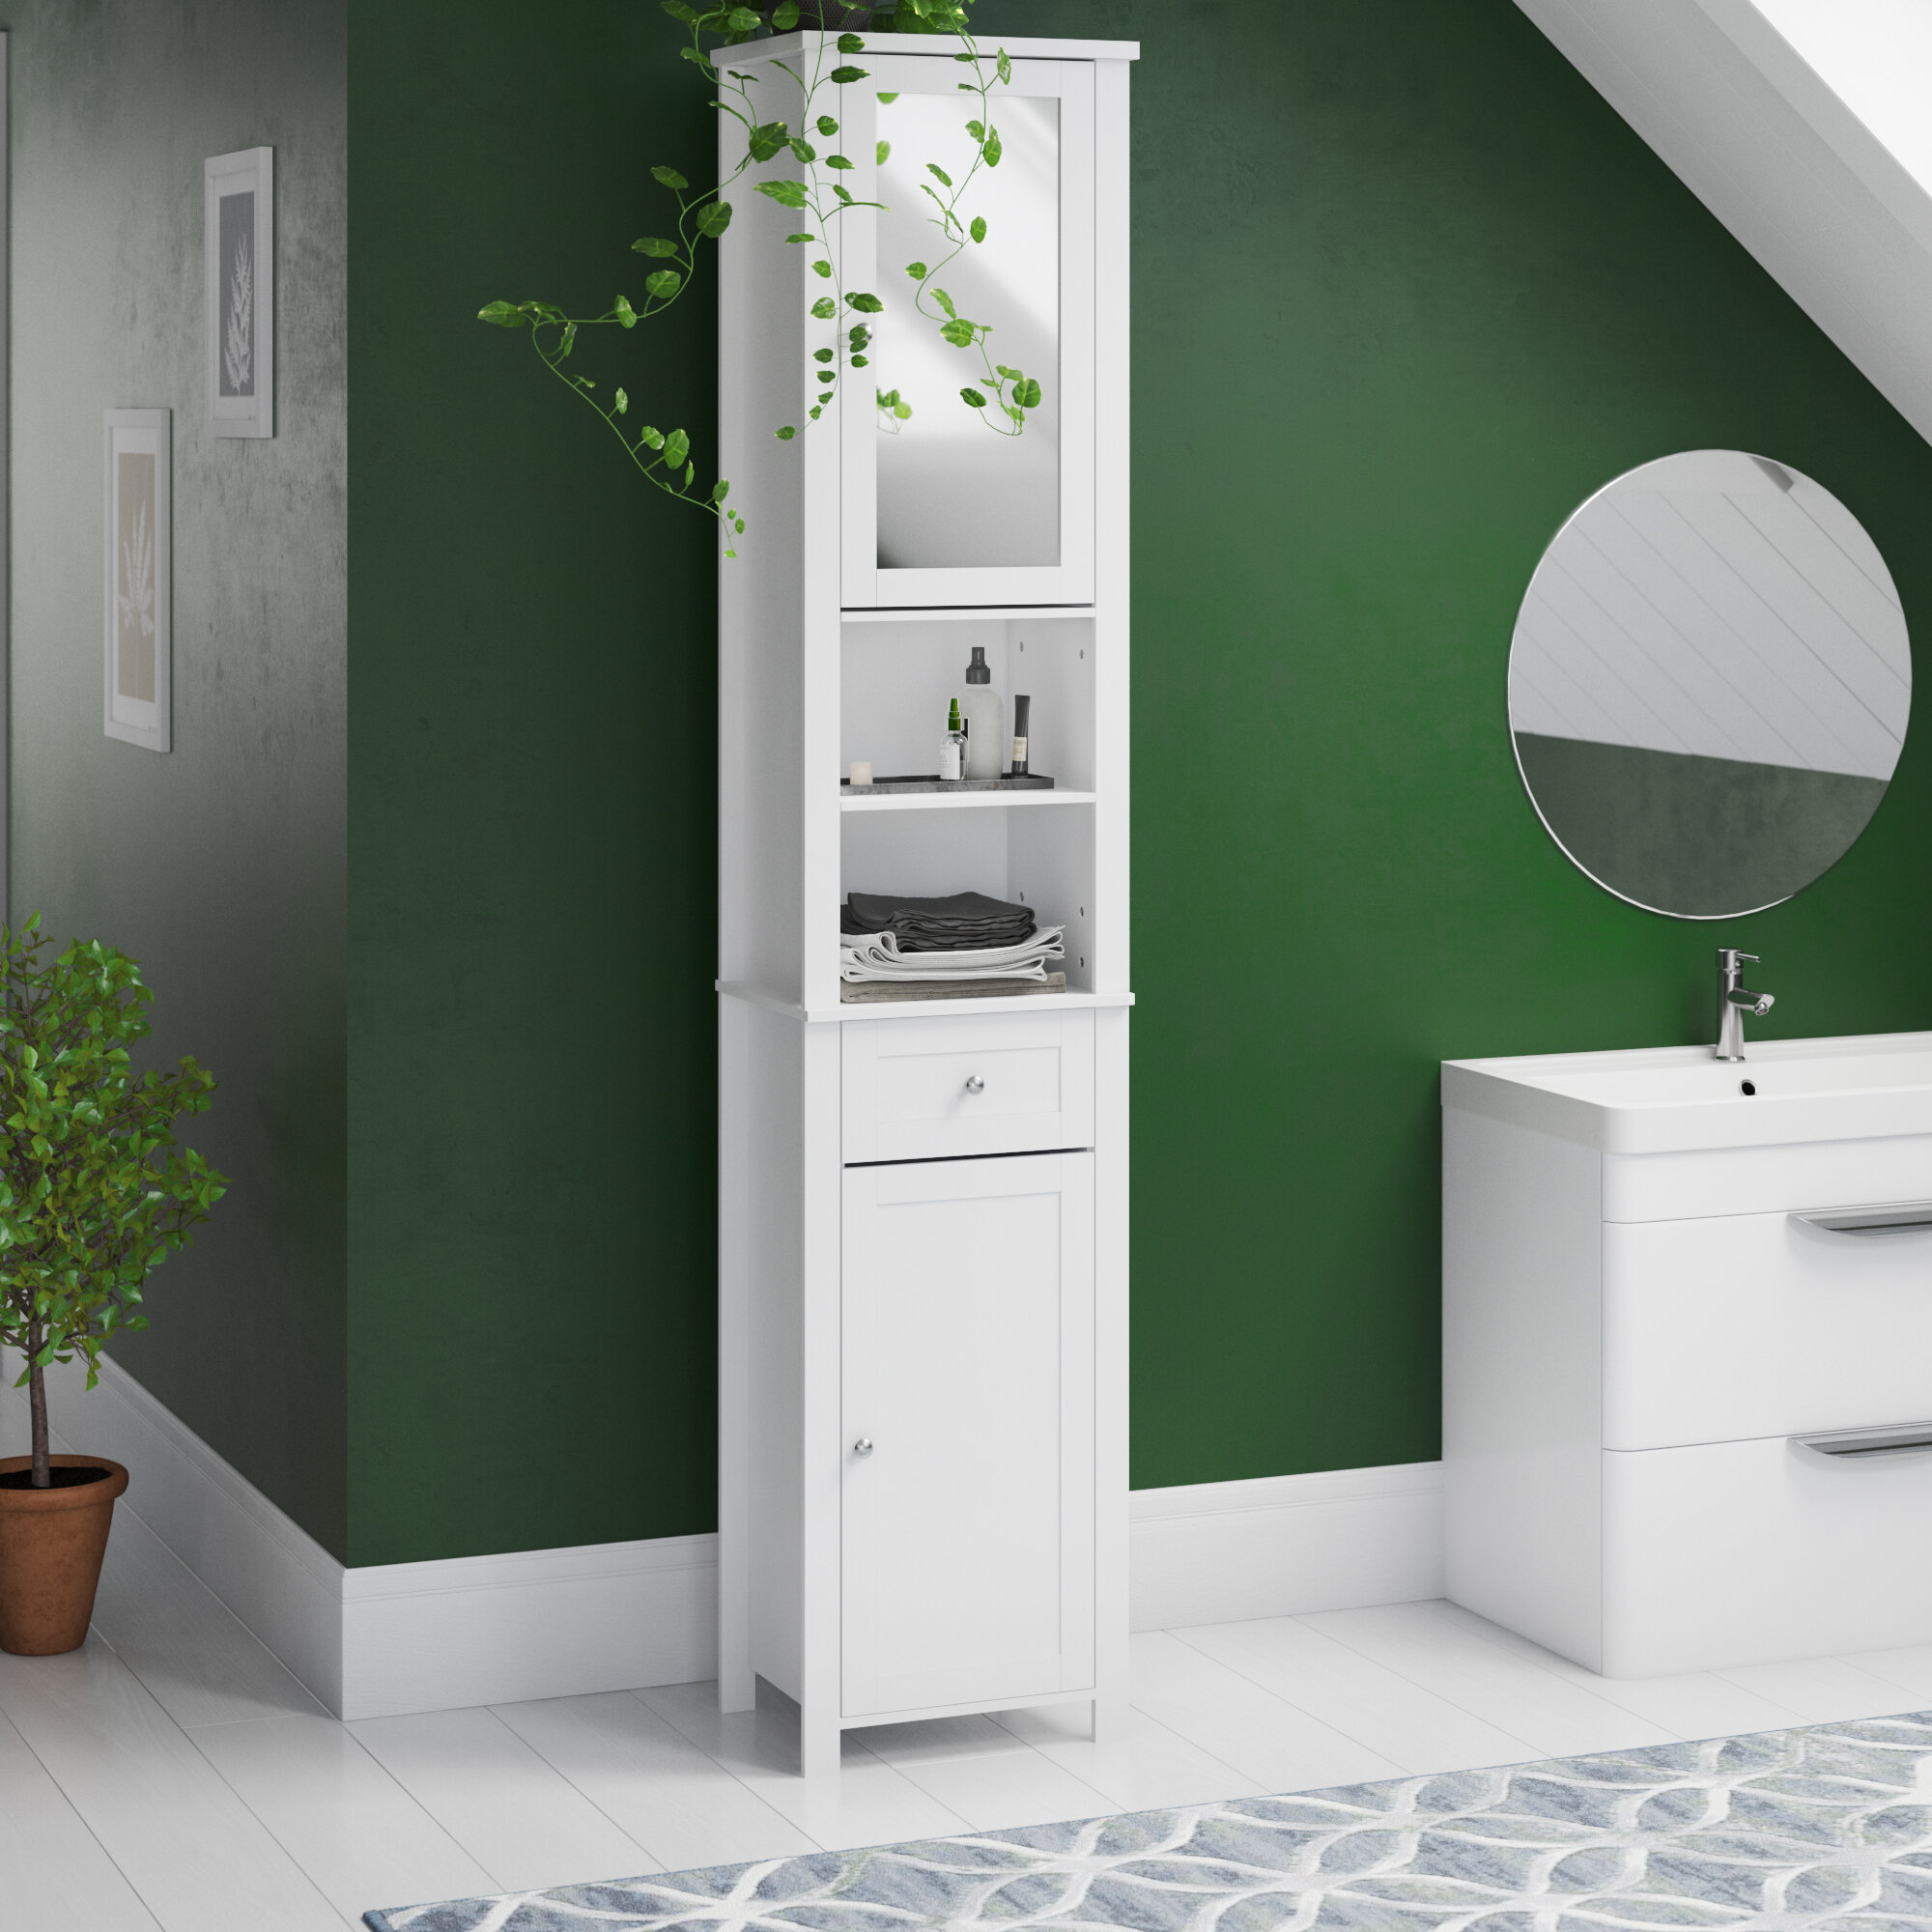 Vida Milano 40 X 190cm Mirrored Free Standing Tall Bathroom Cabinet with dimensions 2000 X 2000